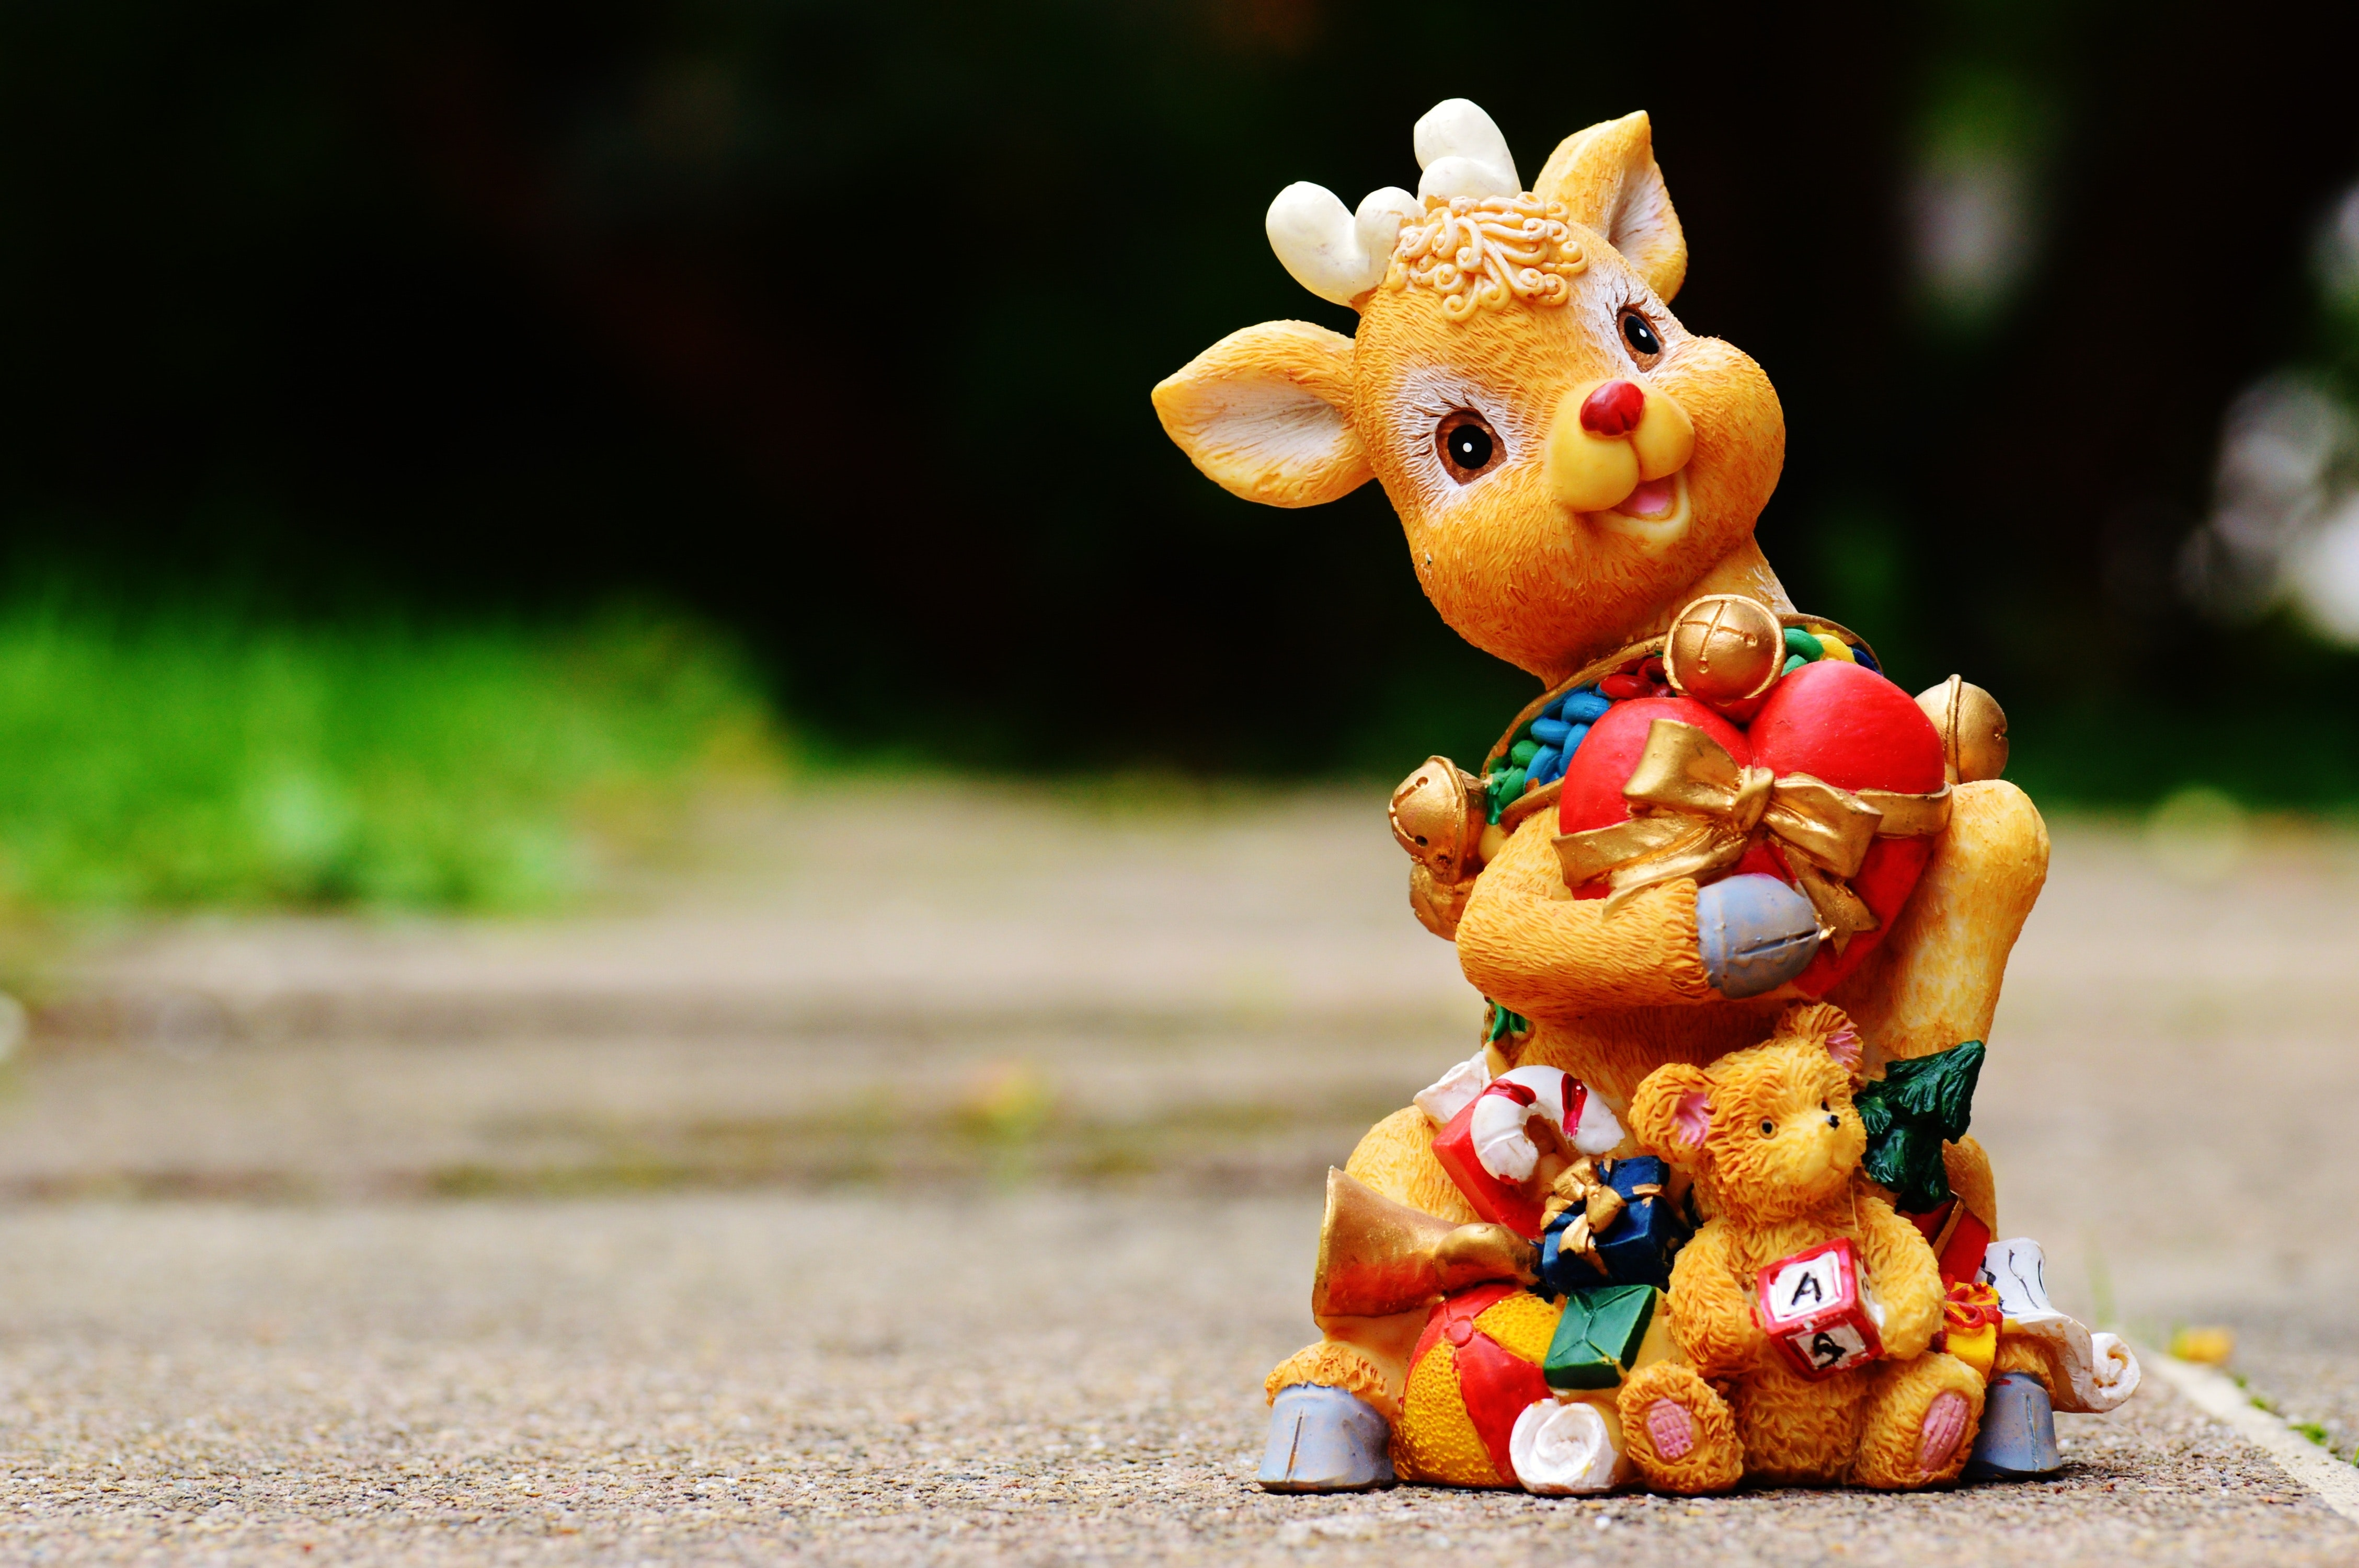 Brown Deer Figurine at Daytime, Celebrate, Christmas, Christmas decoration, December, HQ Photo